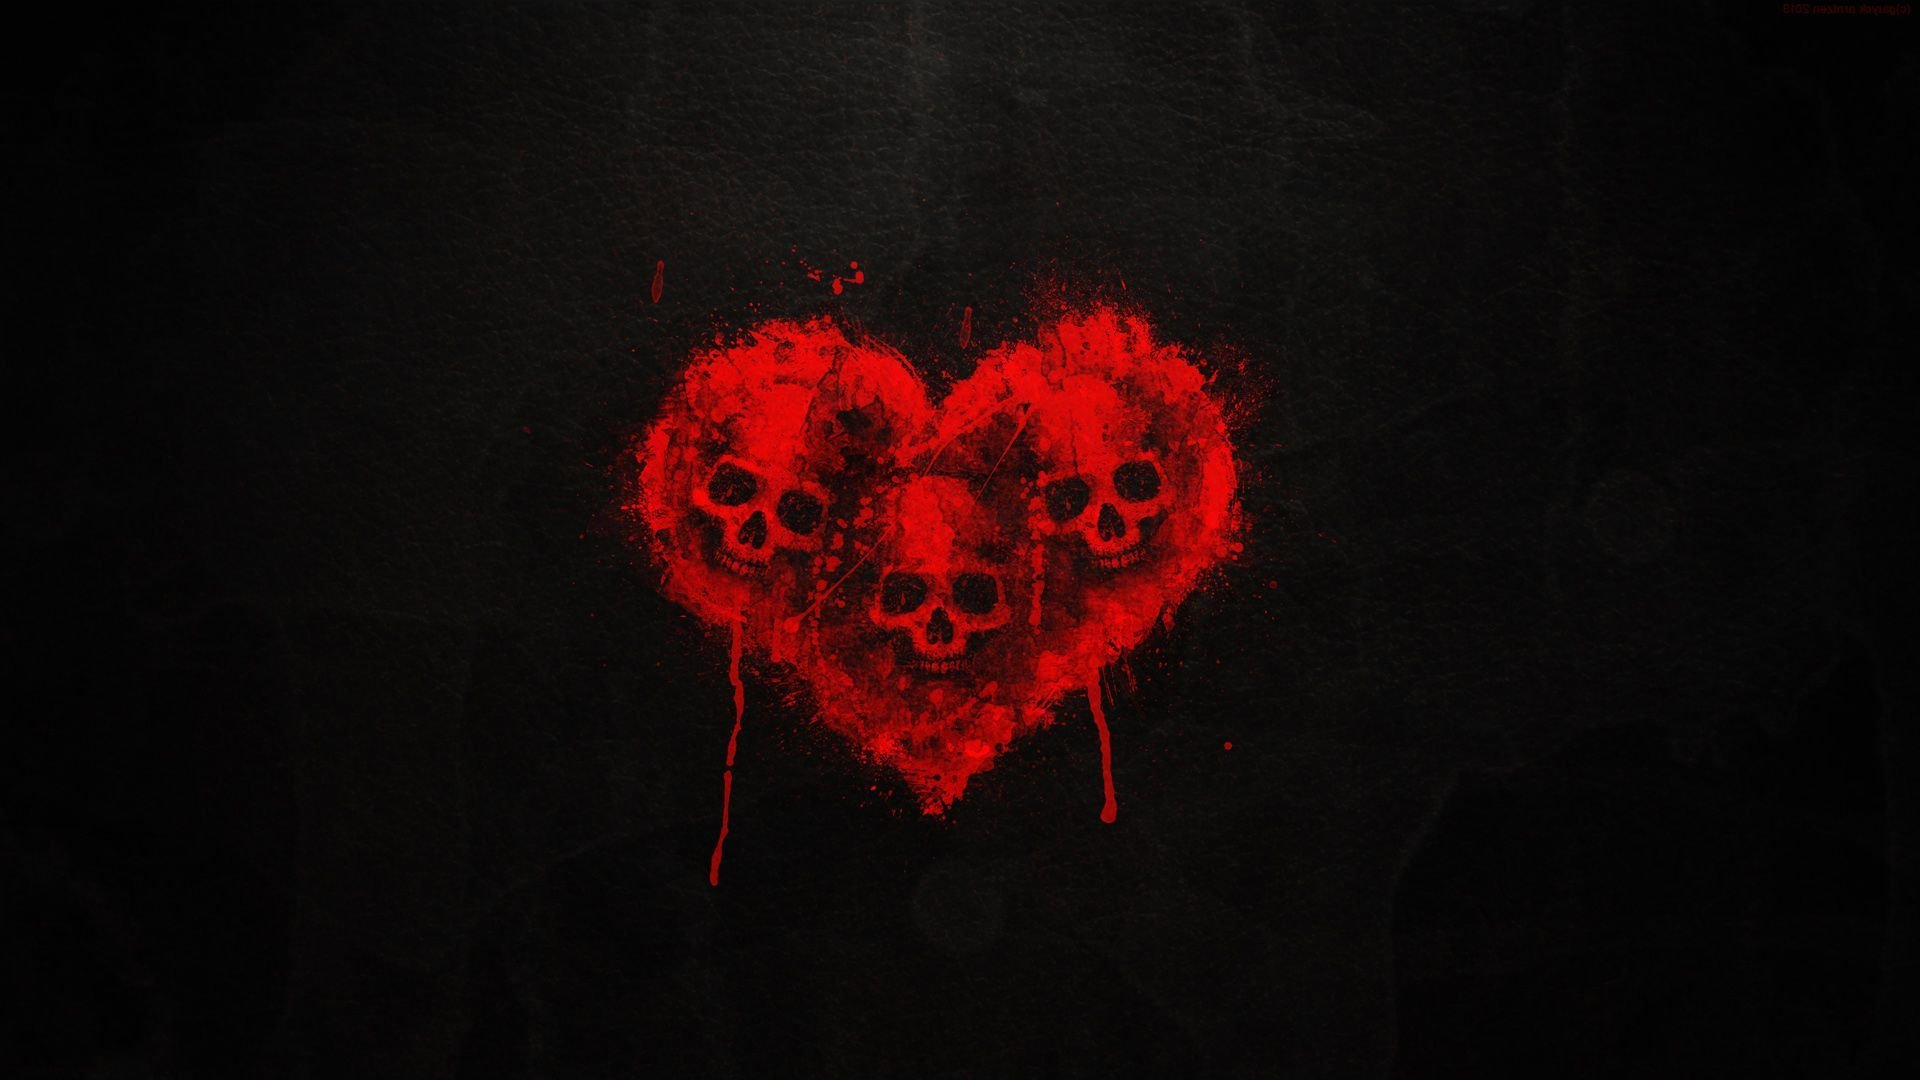 heart of darkness and red heart In heart of darkness and from glowing white changed to a dull red without rays and without heat the real darkness at the heart of this story.